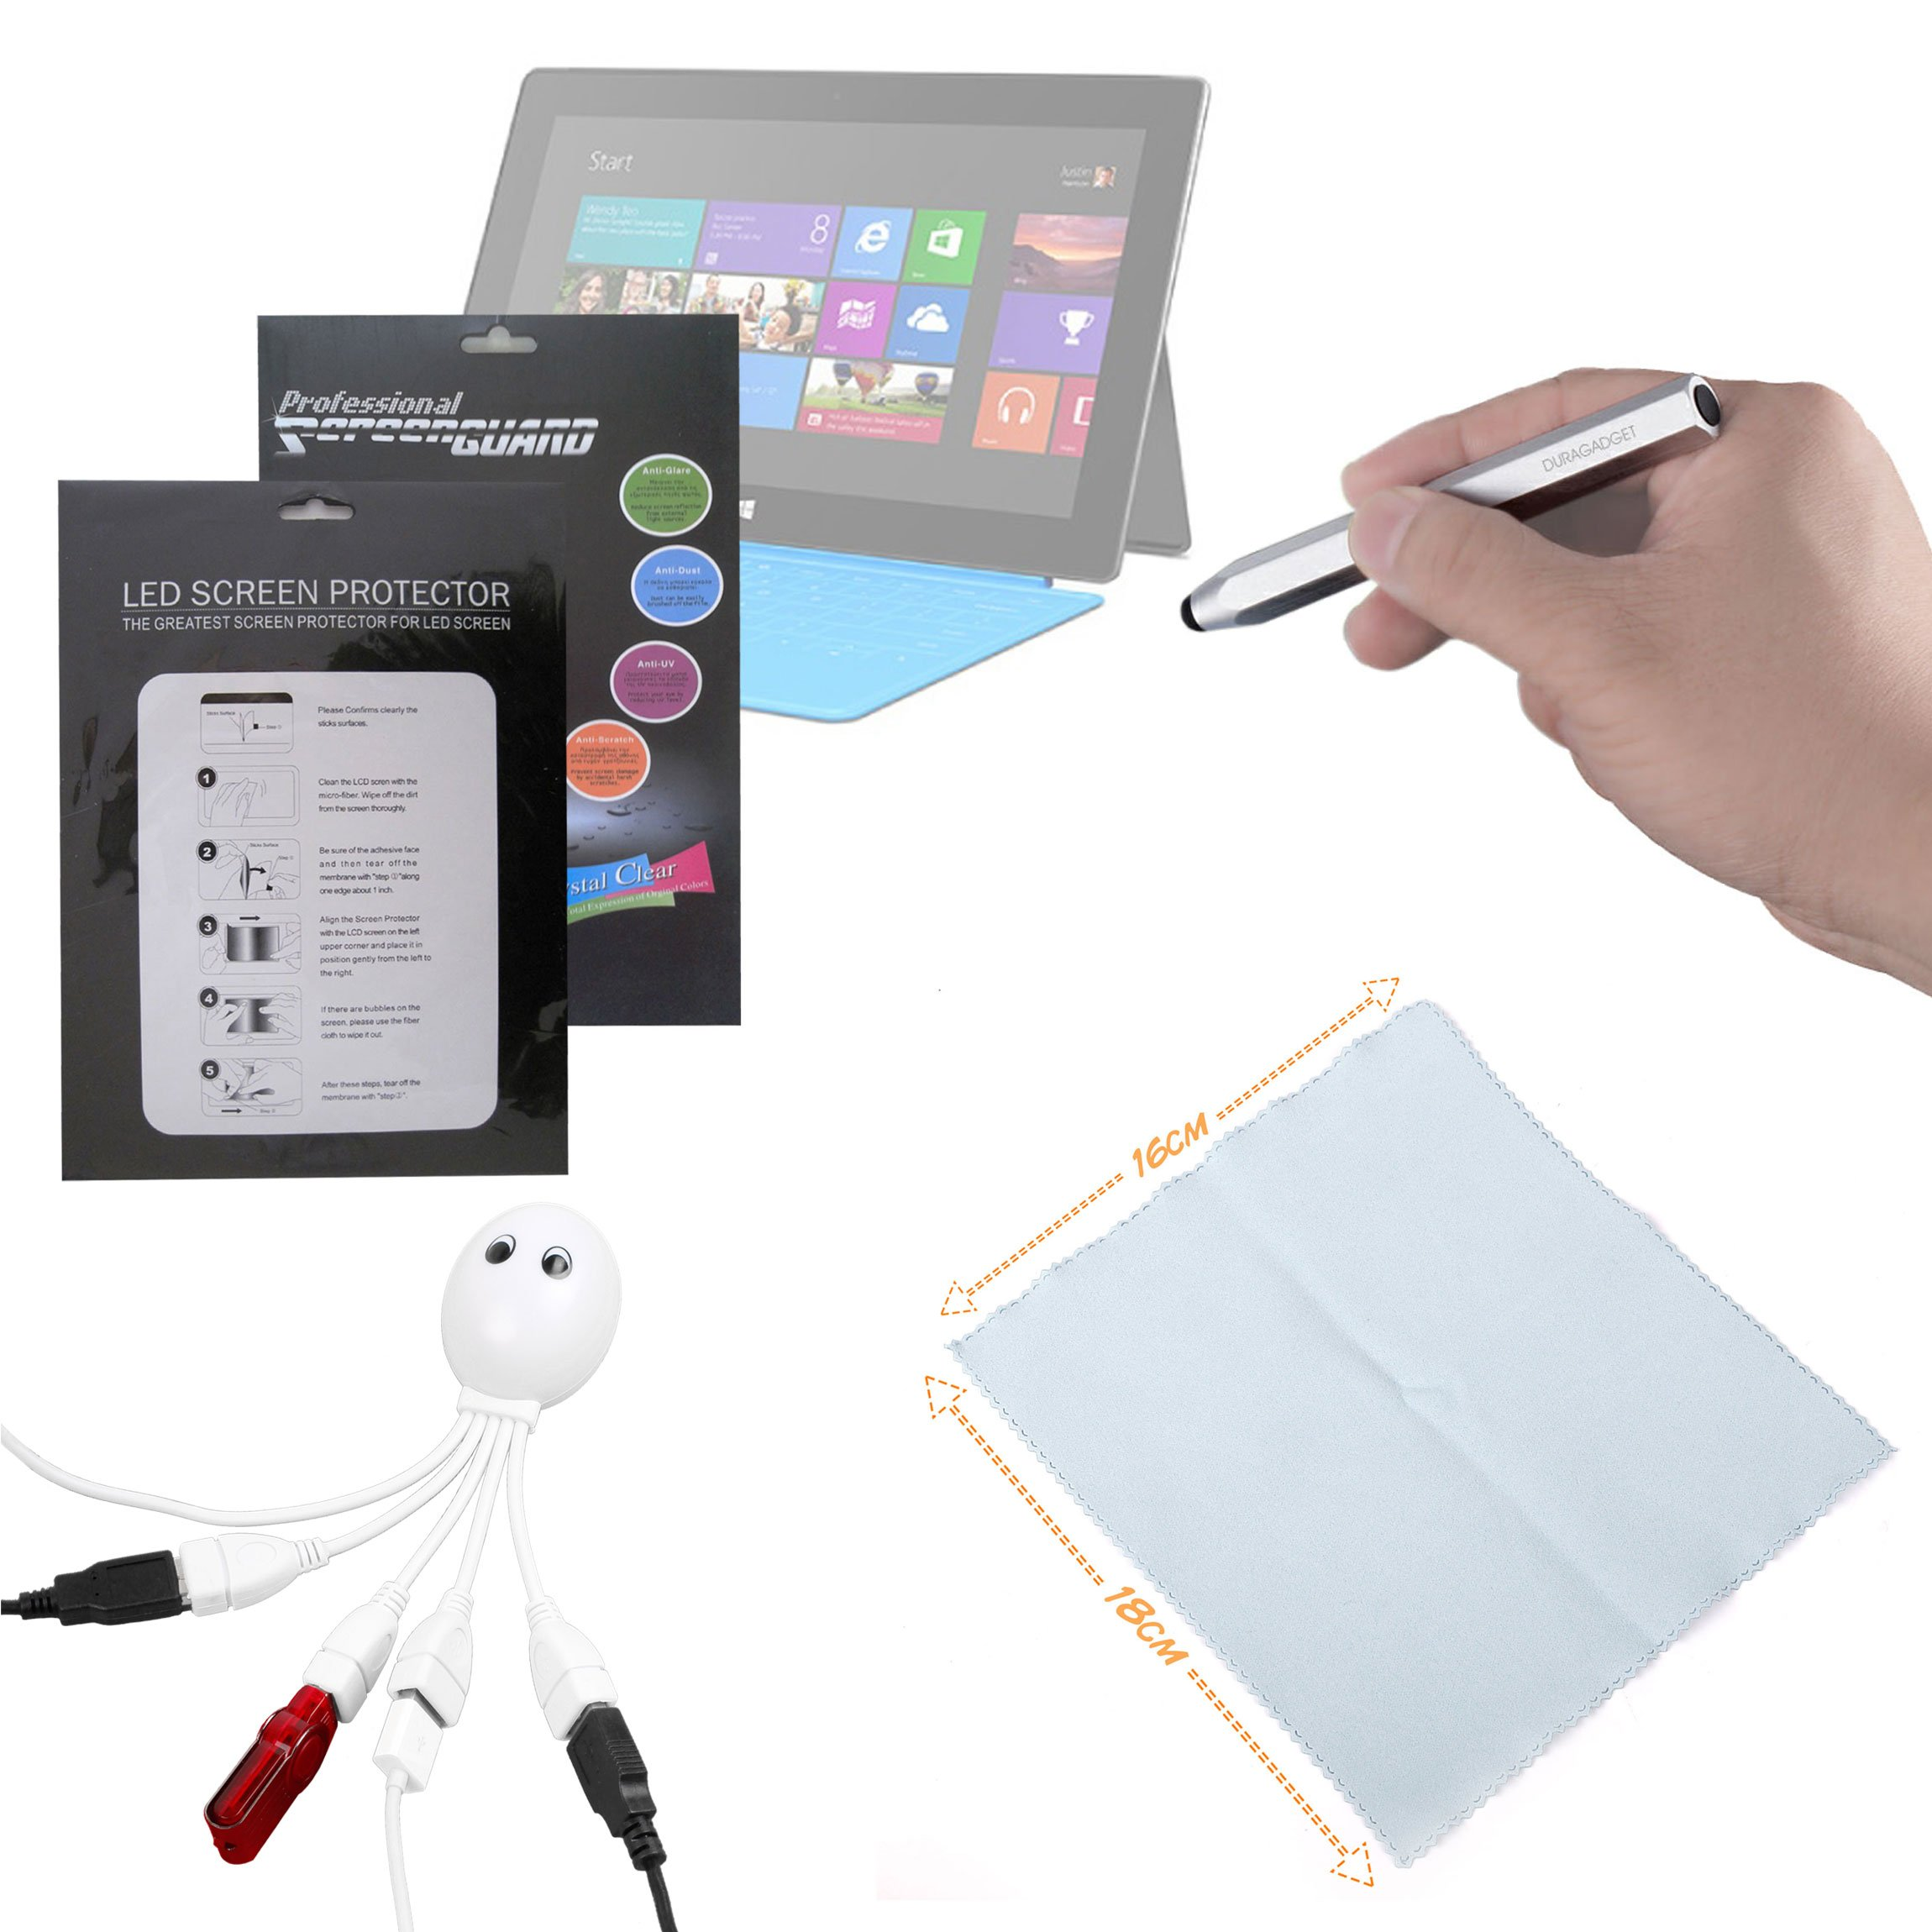 DURAGADGET Microsoft Surface Windows RT (8GB, 16GB, 32GB, 64GB, 128GB) 10.6'' Tablet Accessory Kit: High Quality Clear Screen Protector Guard + BONUS : Silver Chunky Stylus + Cleaning Cloth + Octopus USB Hub